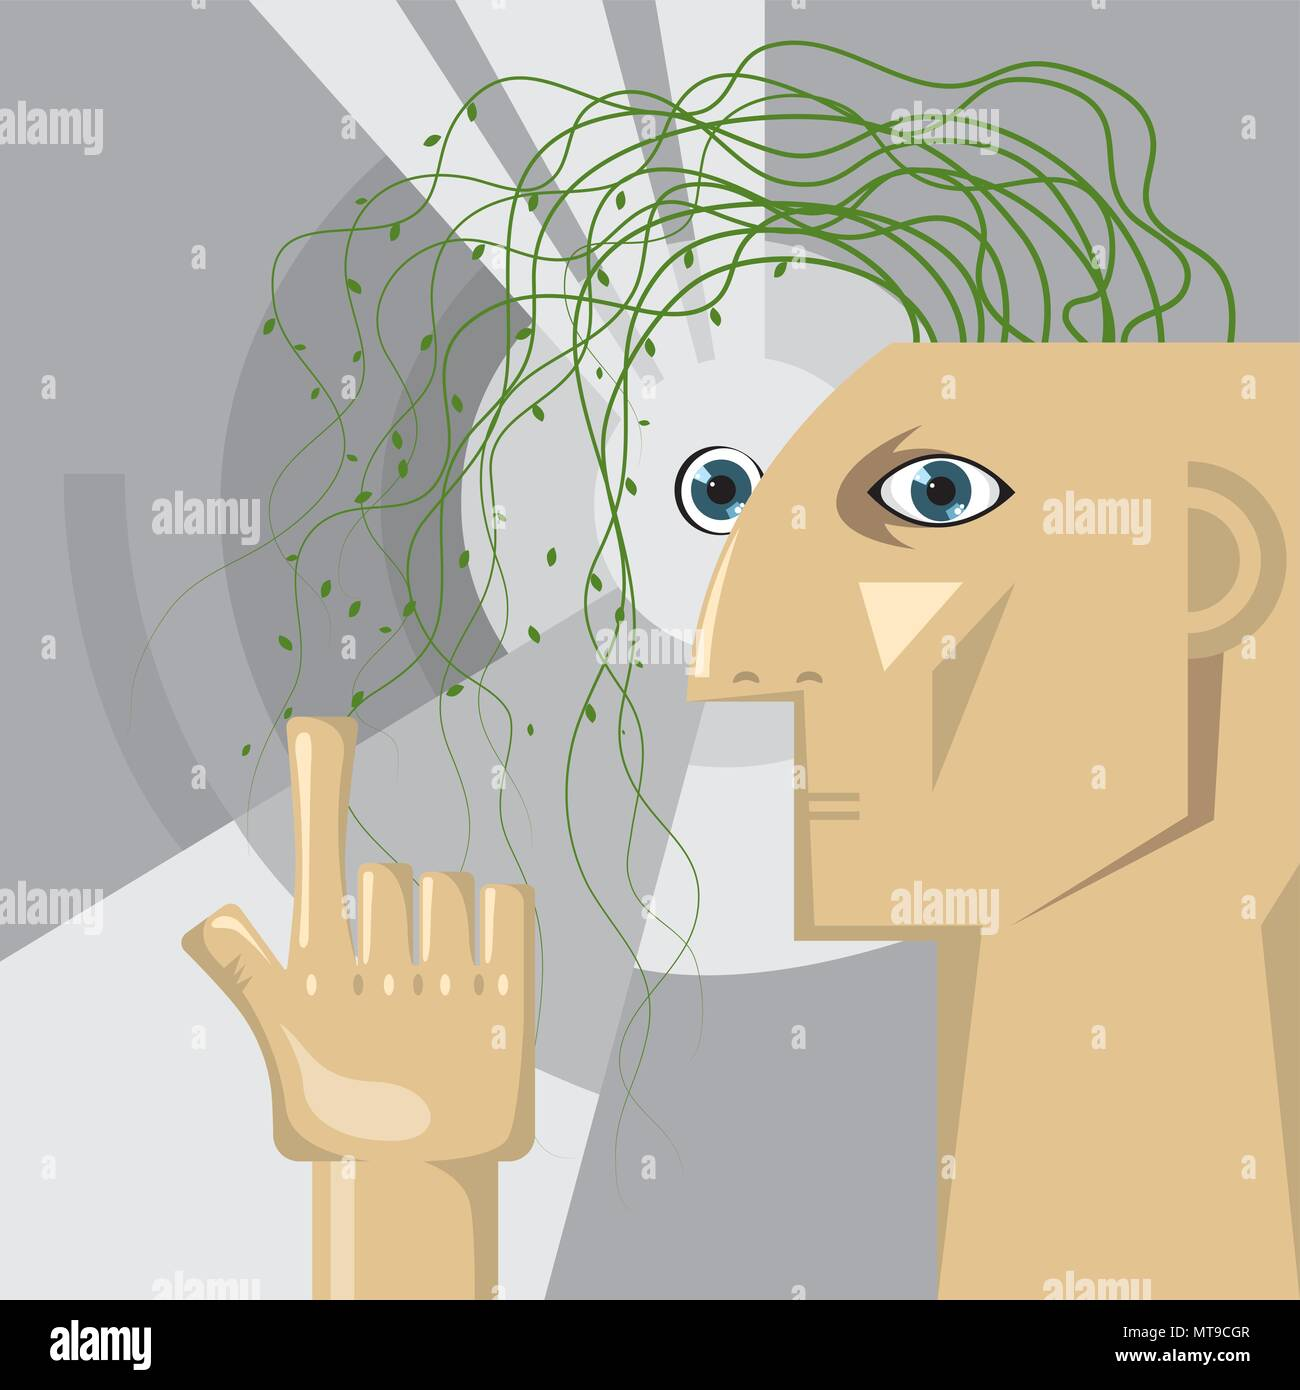 Artificial intelligence concept design, Vine plants grow in the brain. - Stock Vector